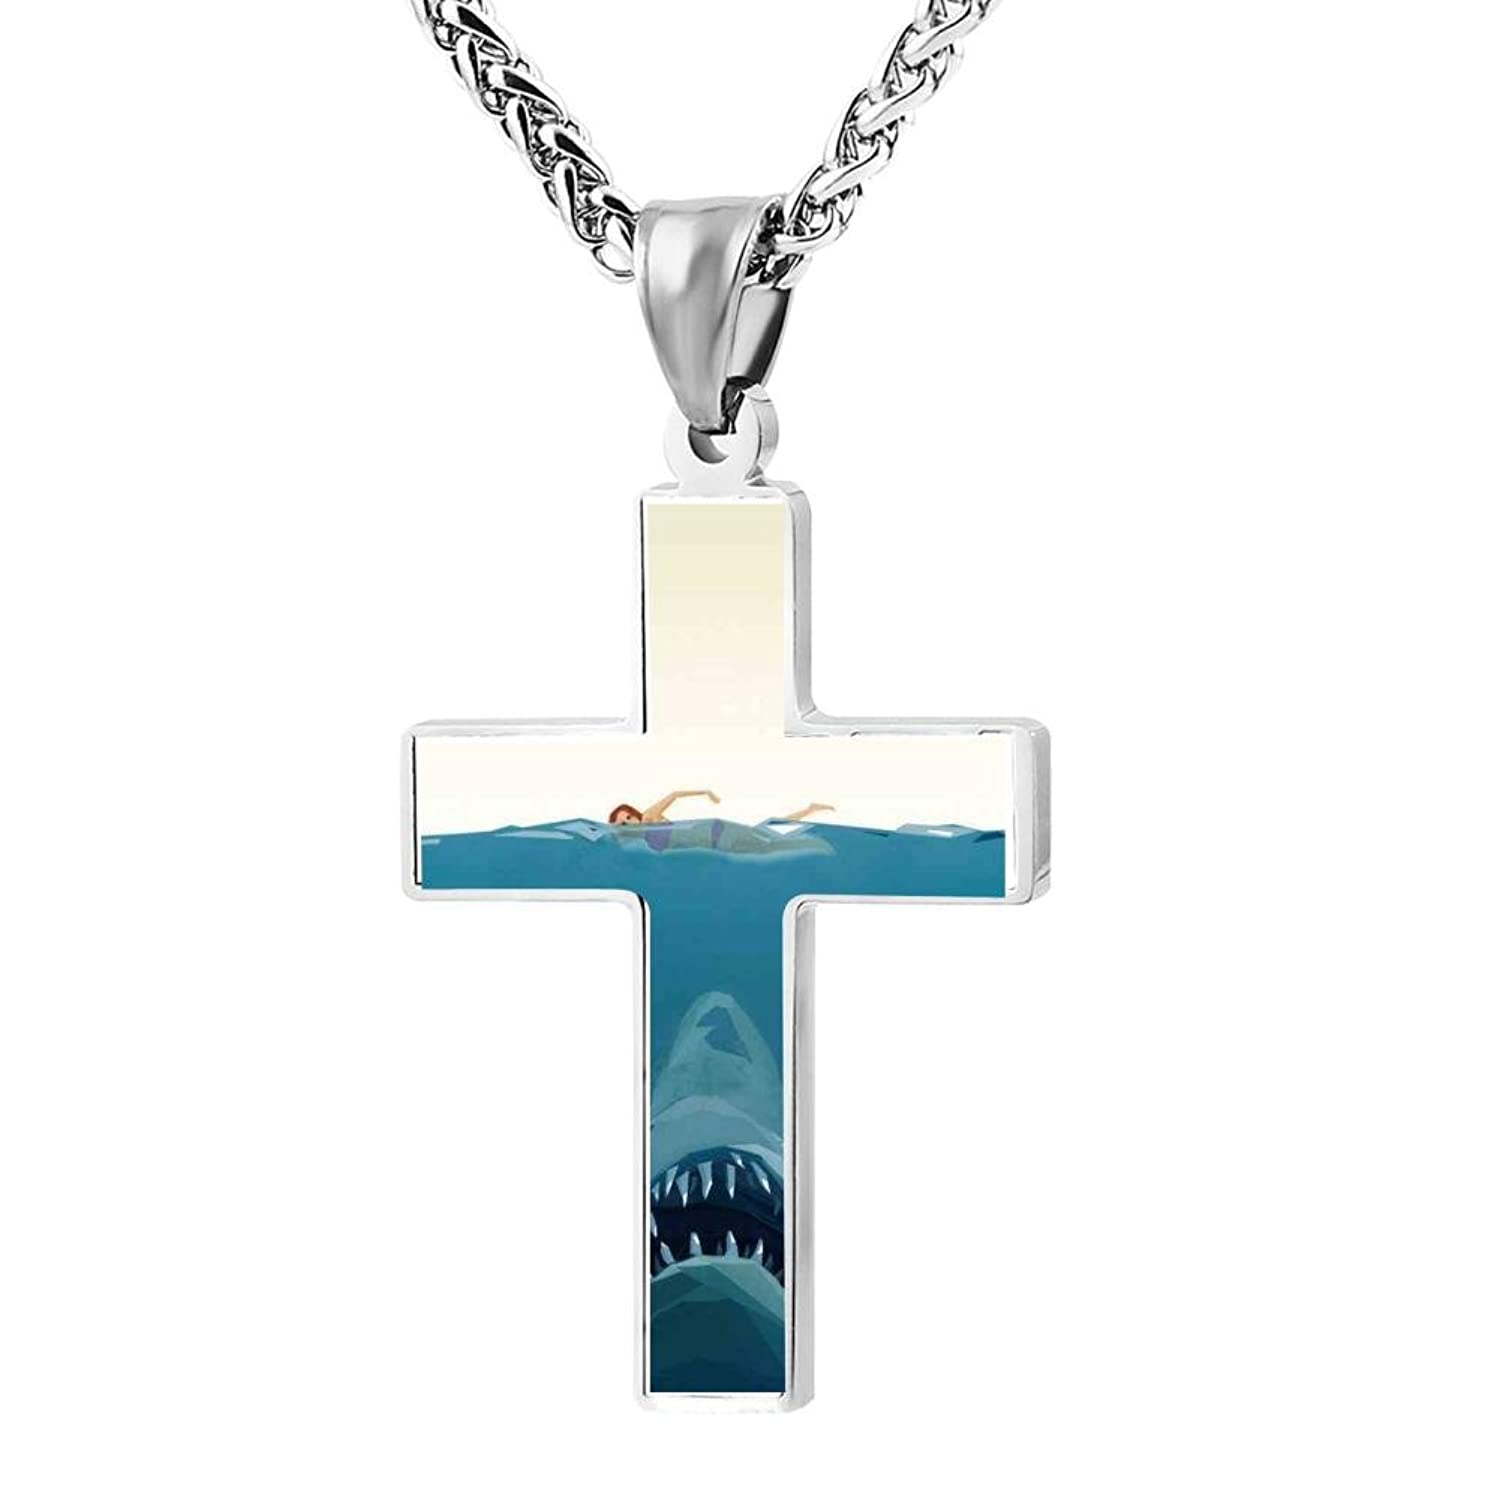 Cross Pendant Water Shark Zinc Alloy Necklace Ornaments forYouth